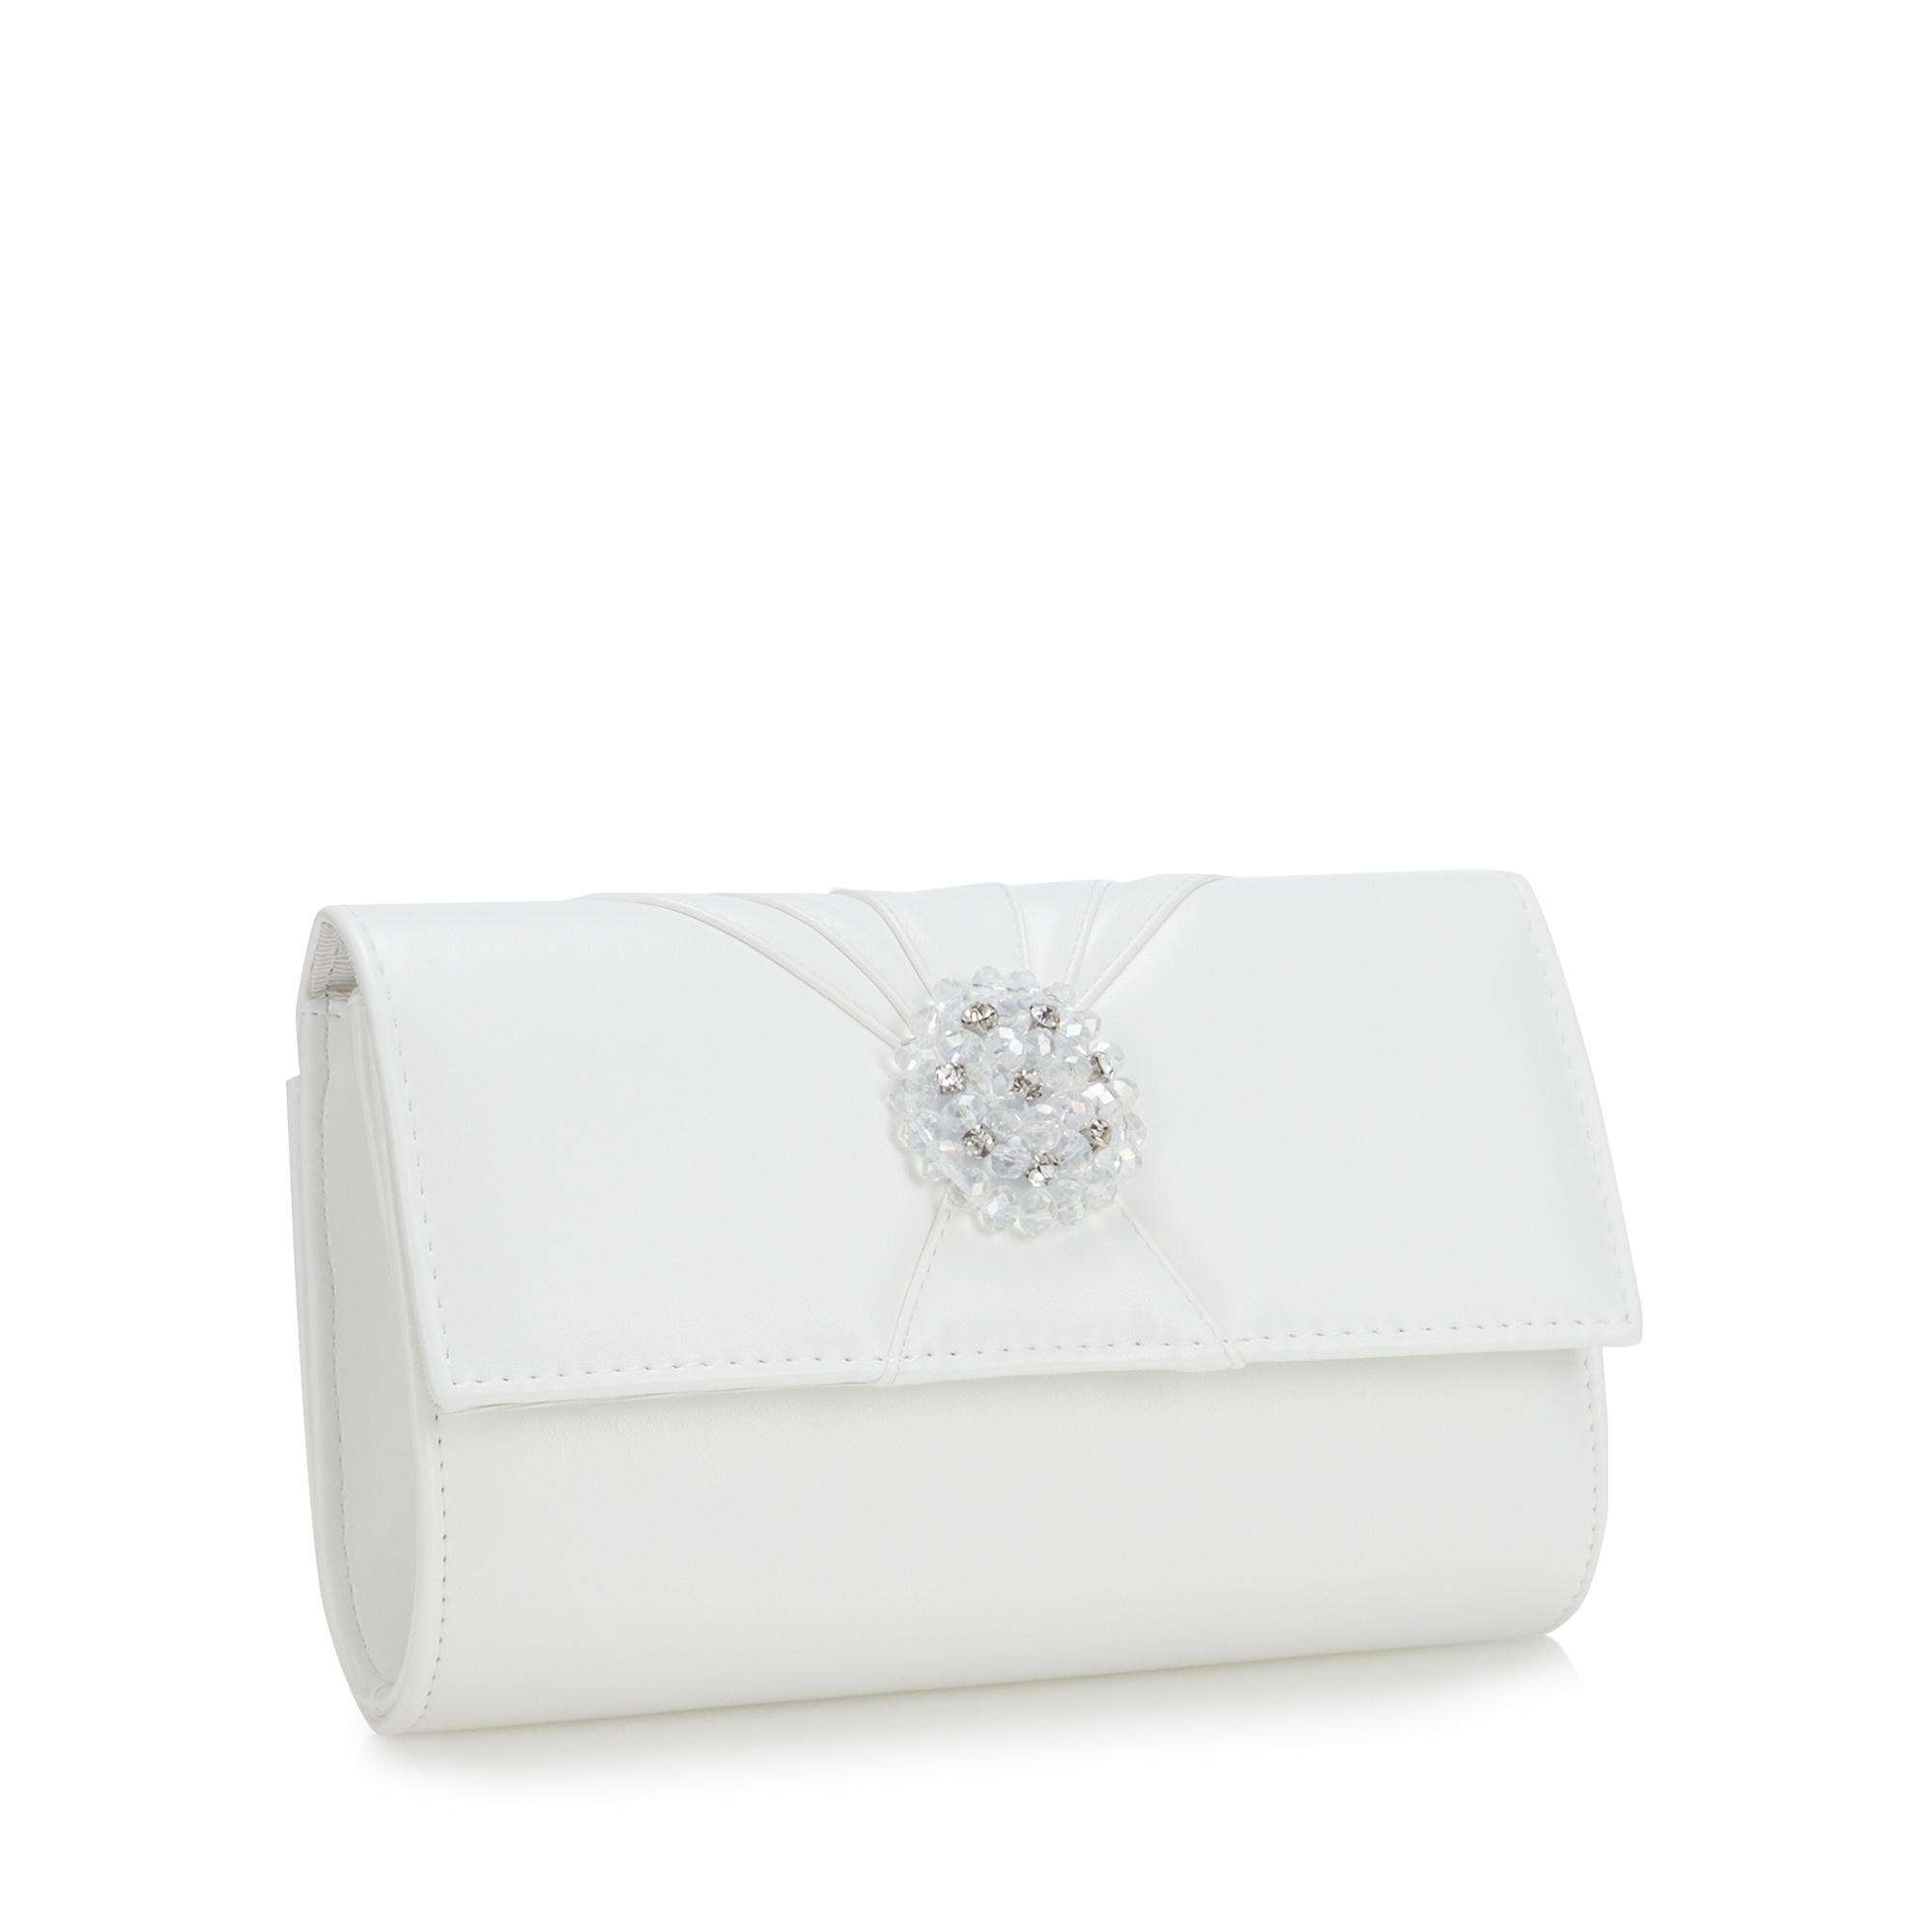 clutch bag for women